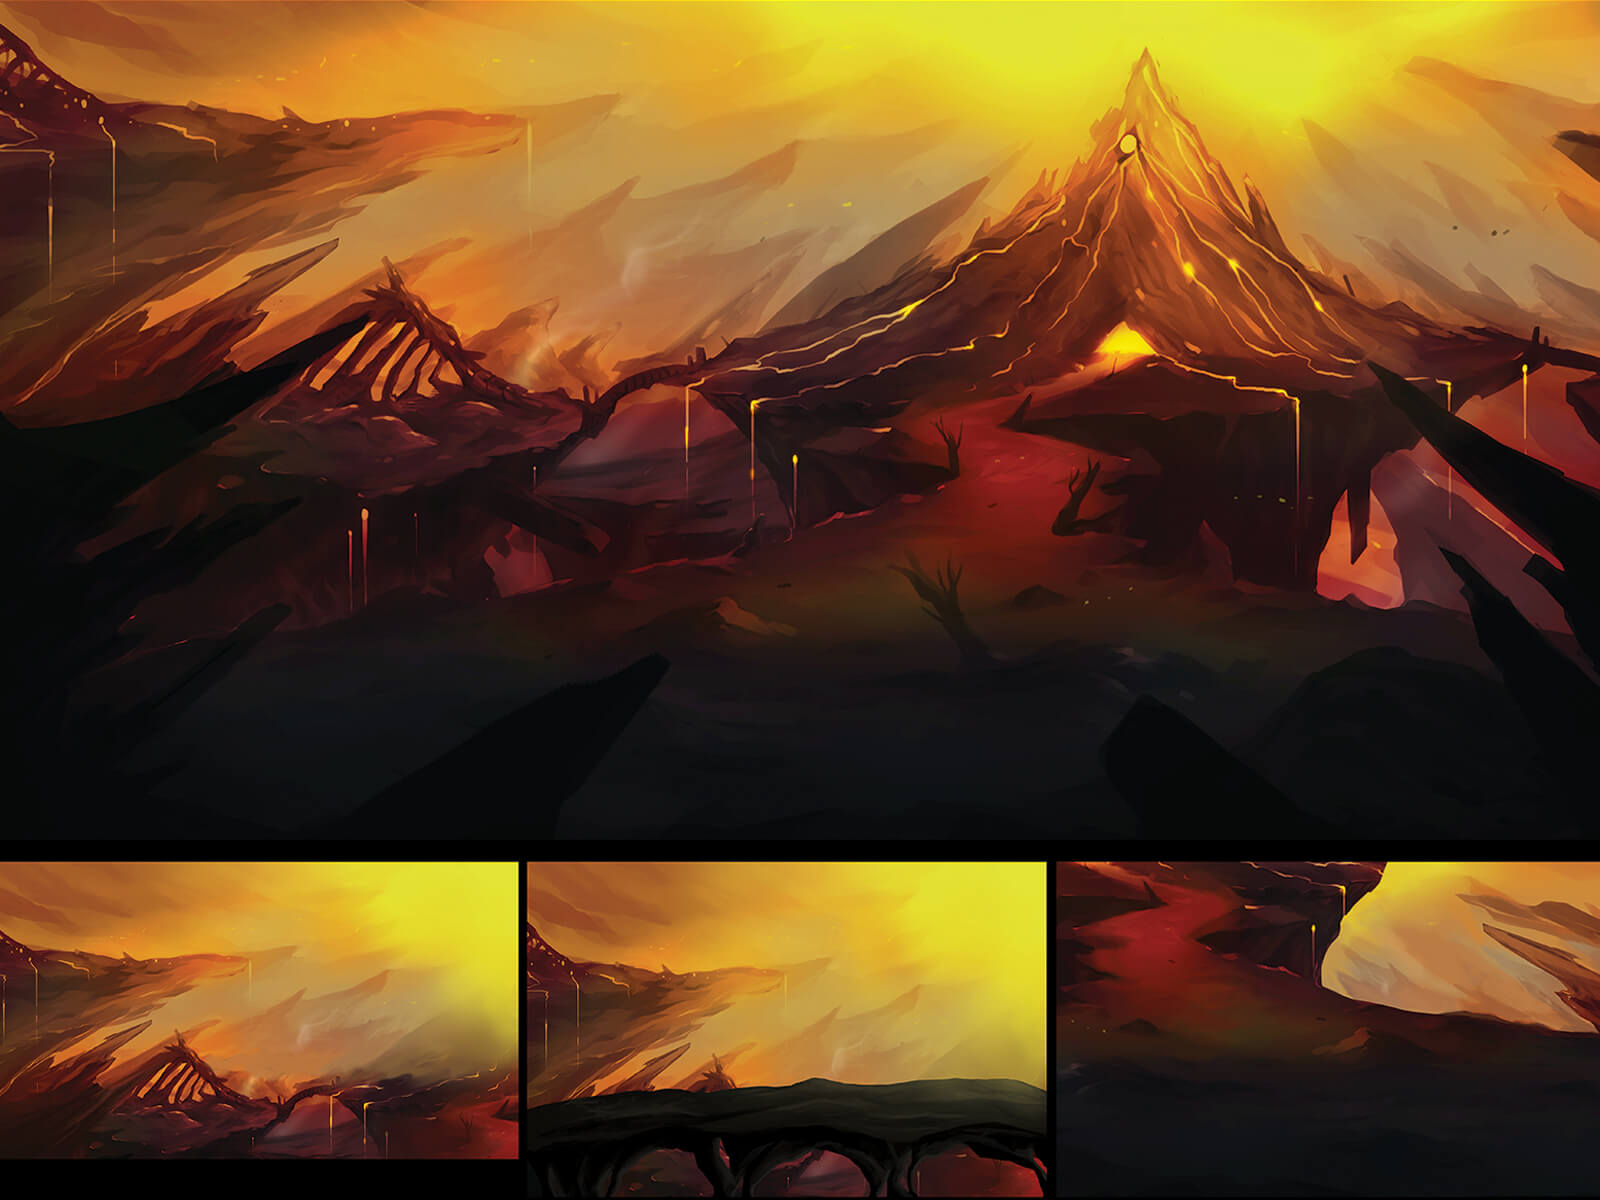 Concept art of landscape in a mountainous area devastated by an active, spewing volcano, the scene's only source of light.